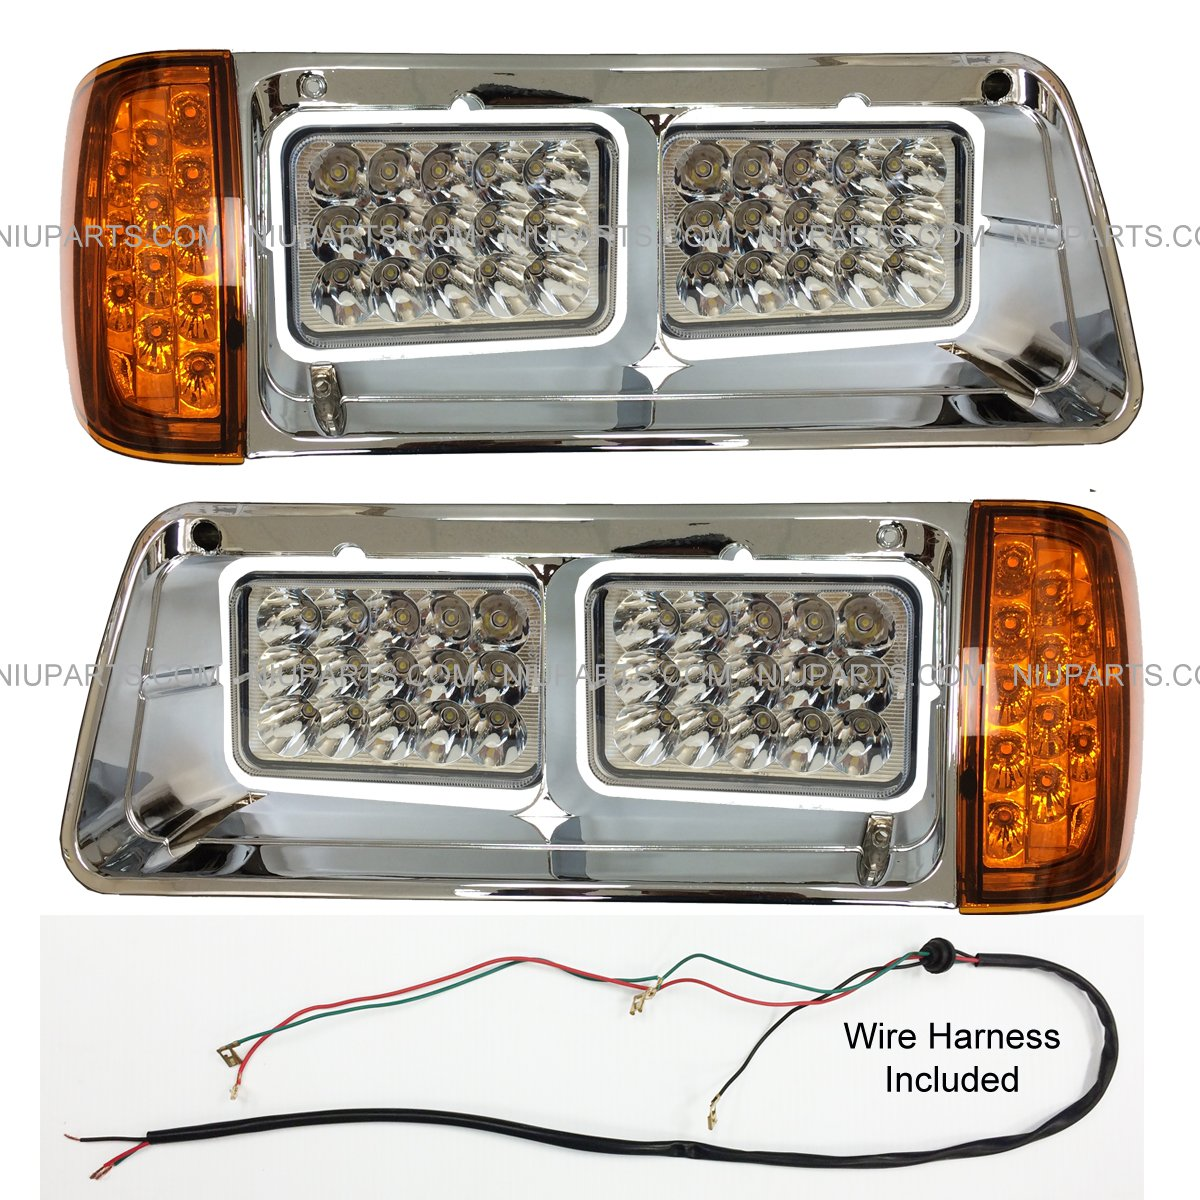 Led Headlight With Corner Light And Bezel Chrome 2002 Peterbilt 379 Turn Signal Wiring Diagram Driver Passenger Side Fit Freightliner Fld Automotive